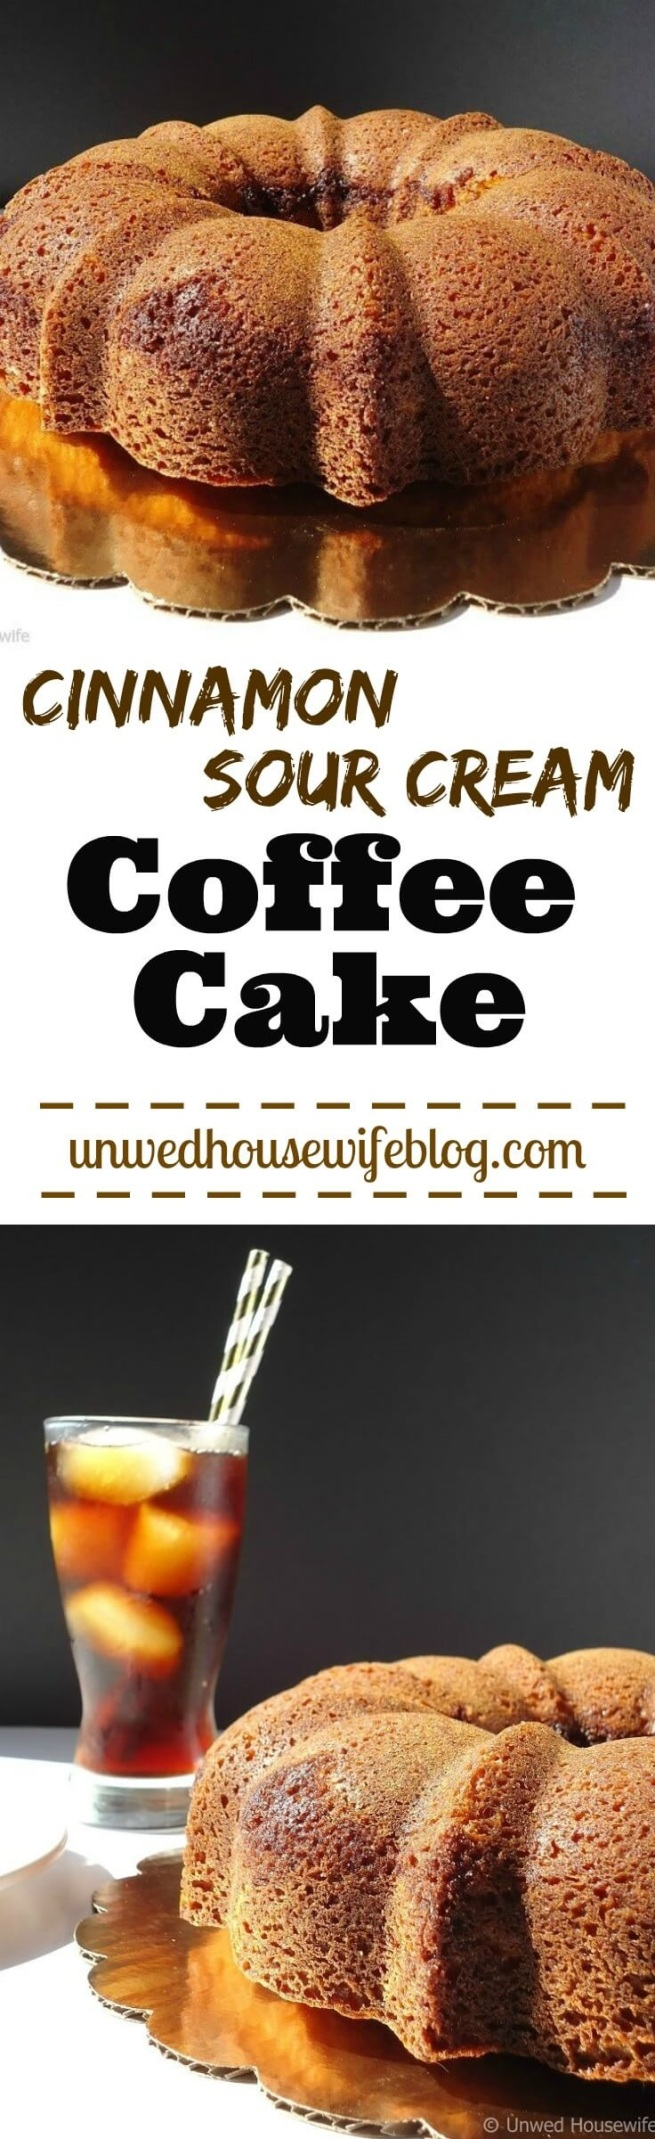 Cinnamon Sour Cream Coffee Cake   Unwed Housewife   Moist, fluffy coffee cake with a cinnamon sugar swirl. A simple, easy coffee cake recipe. This cinnamon sour cream coffee cake is so good, you'll want to eat it all day.